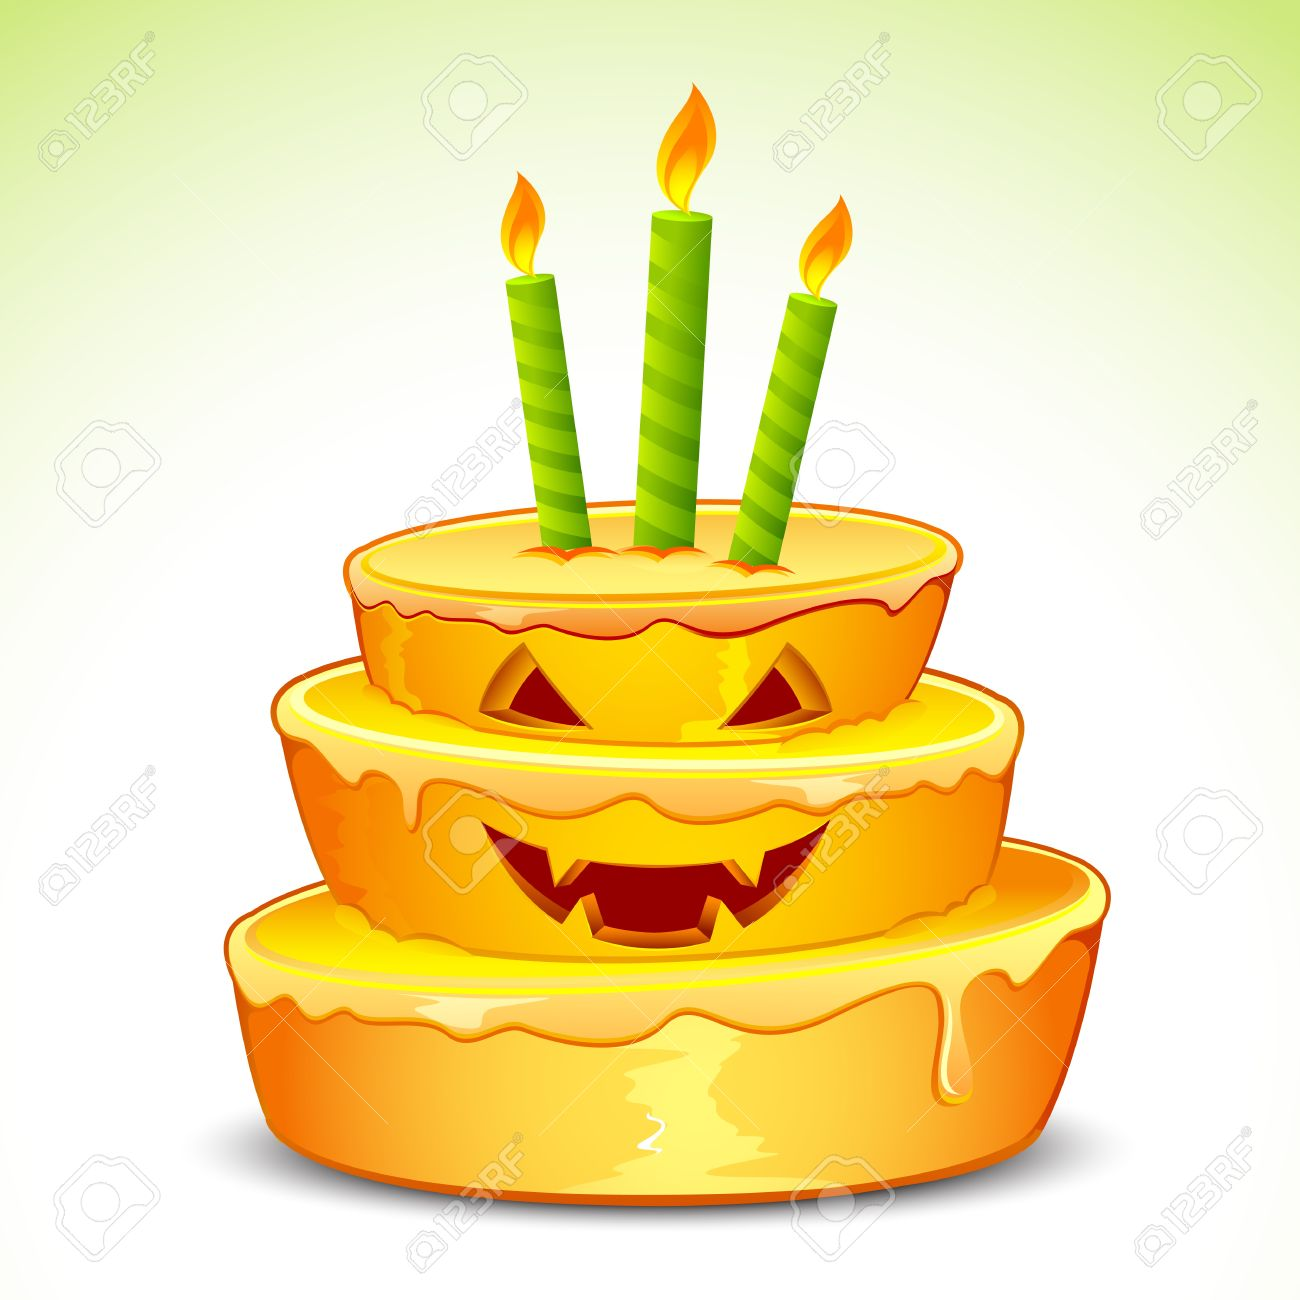 illustration of pumpkin cake for halloween with candle royalty on pumpkin birthday cake clipart